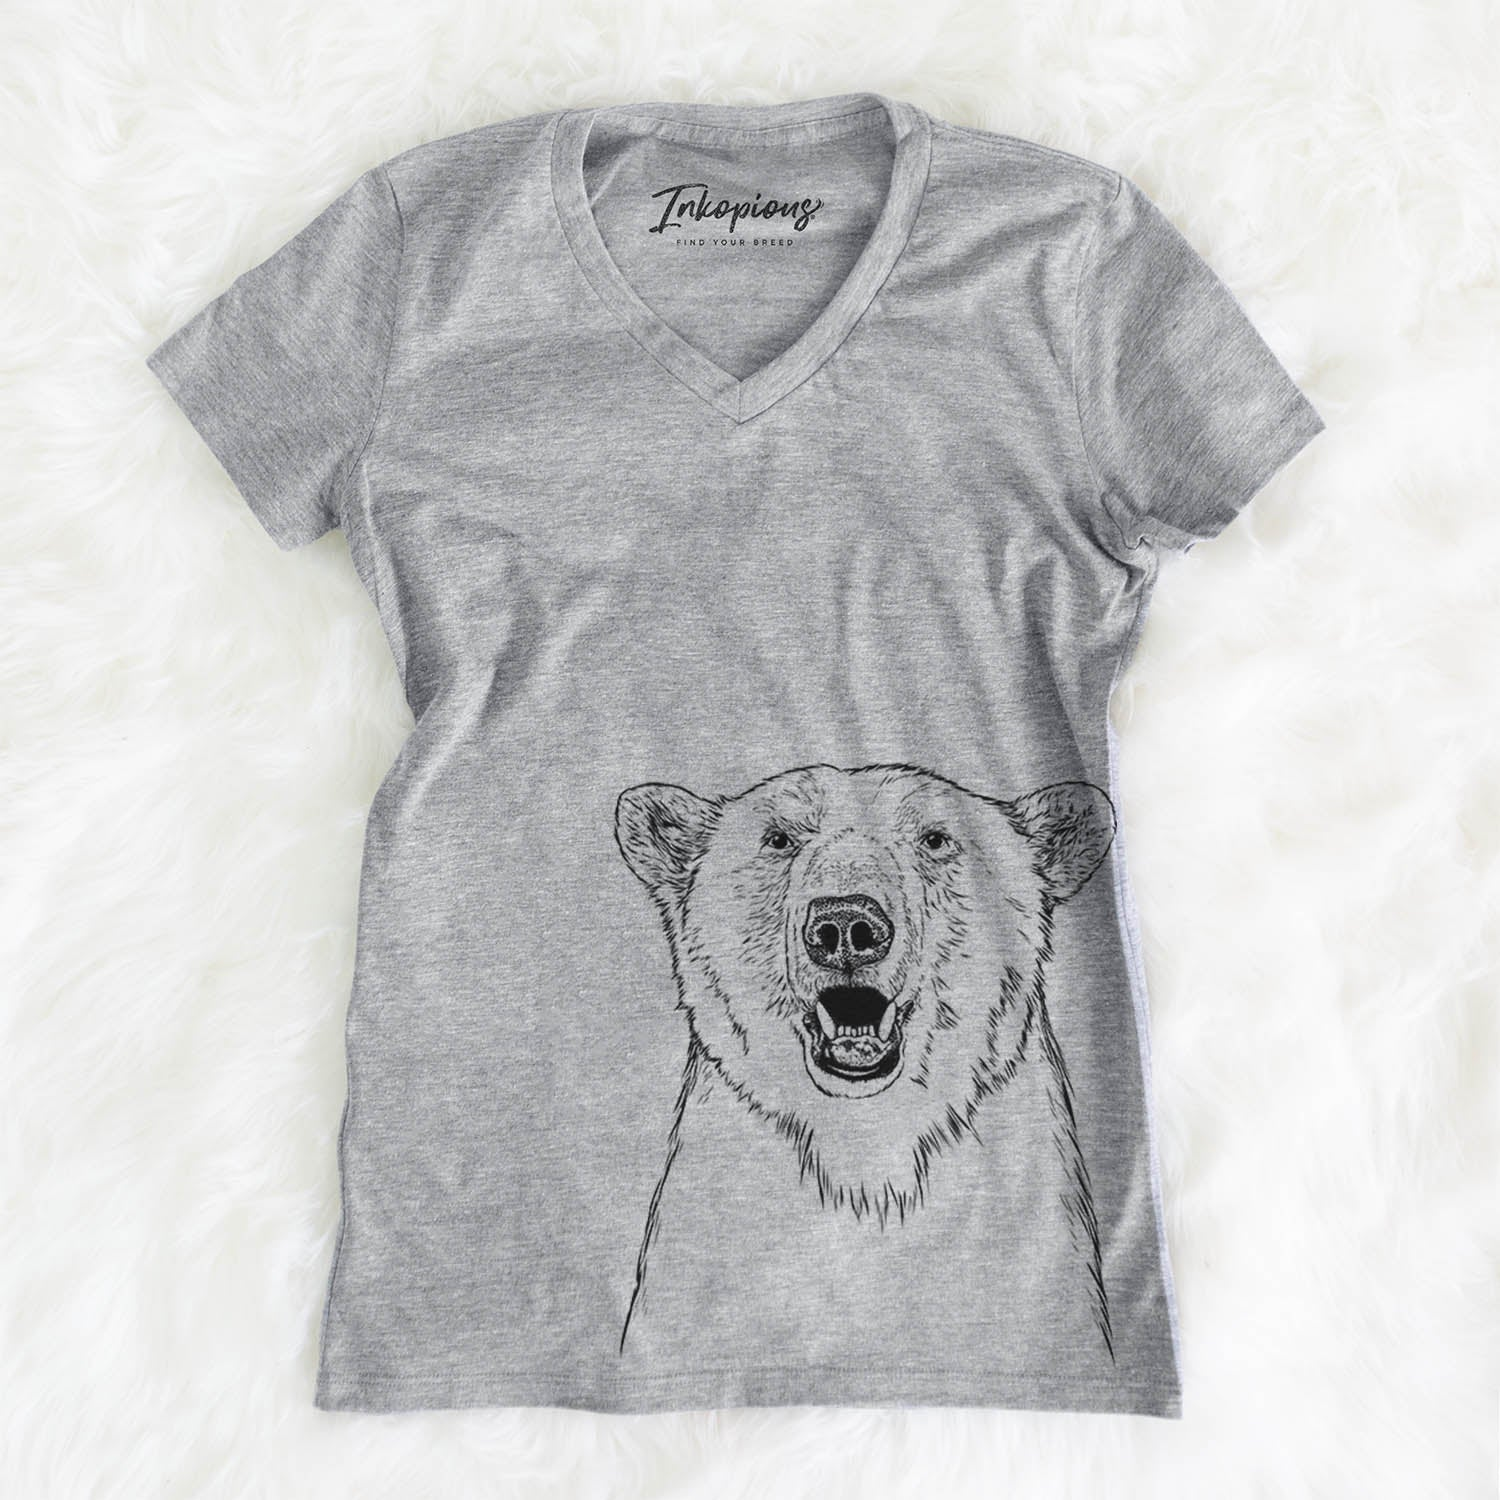 Oslo the Polar Bear - Women's Modern Fit V-neck Shirt